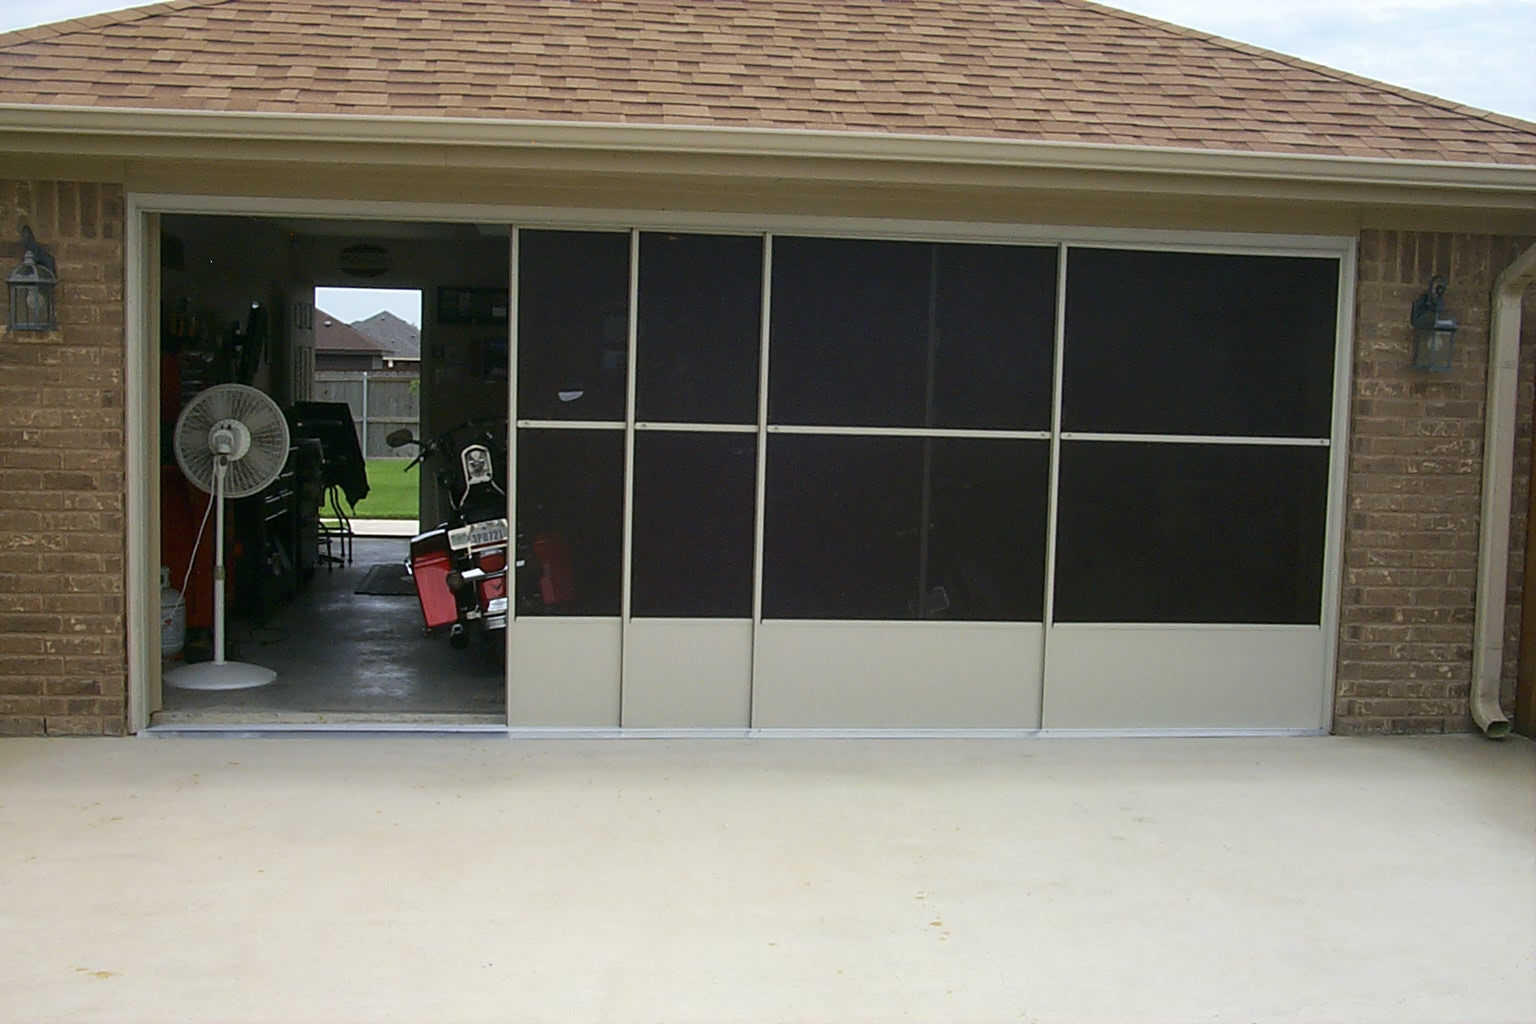 1024 #5C4F38 Gallery Solar Screens Killeen wallpaper Garage Doors In My Area 37451536